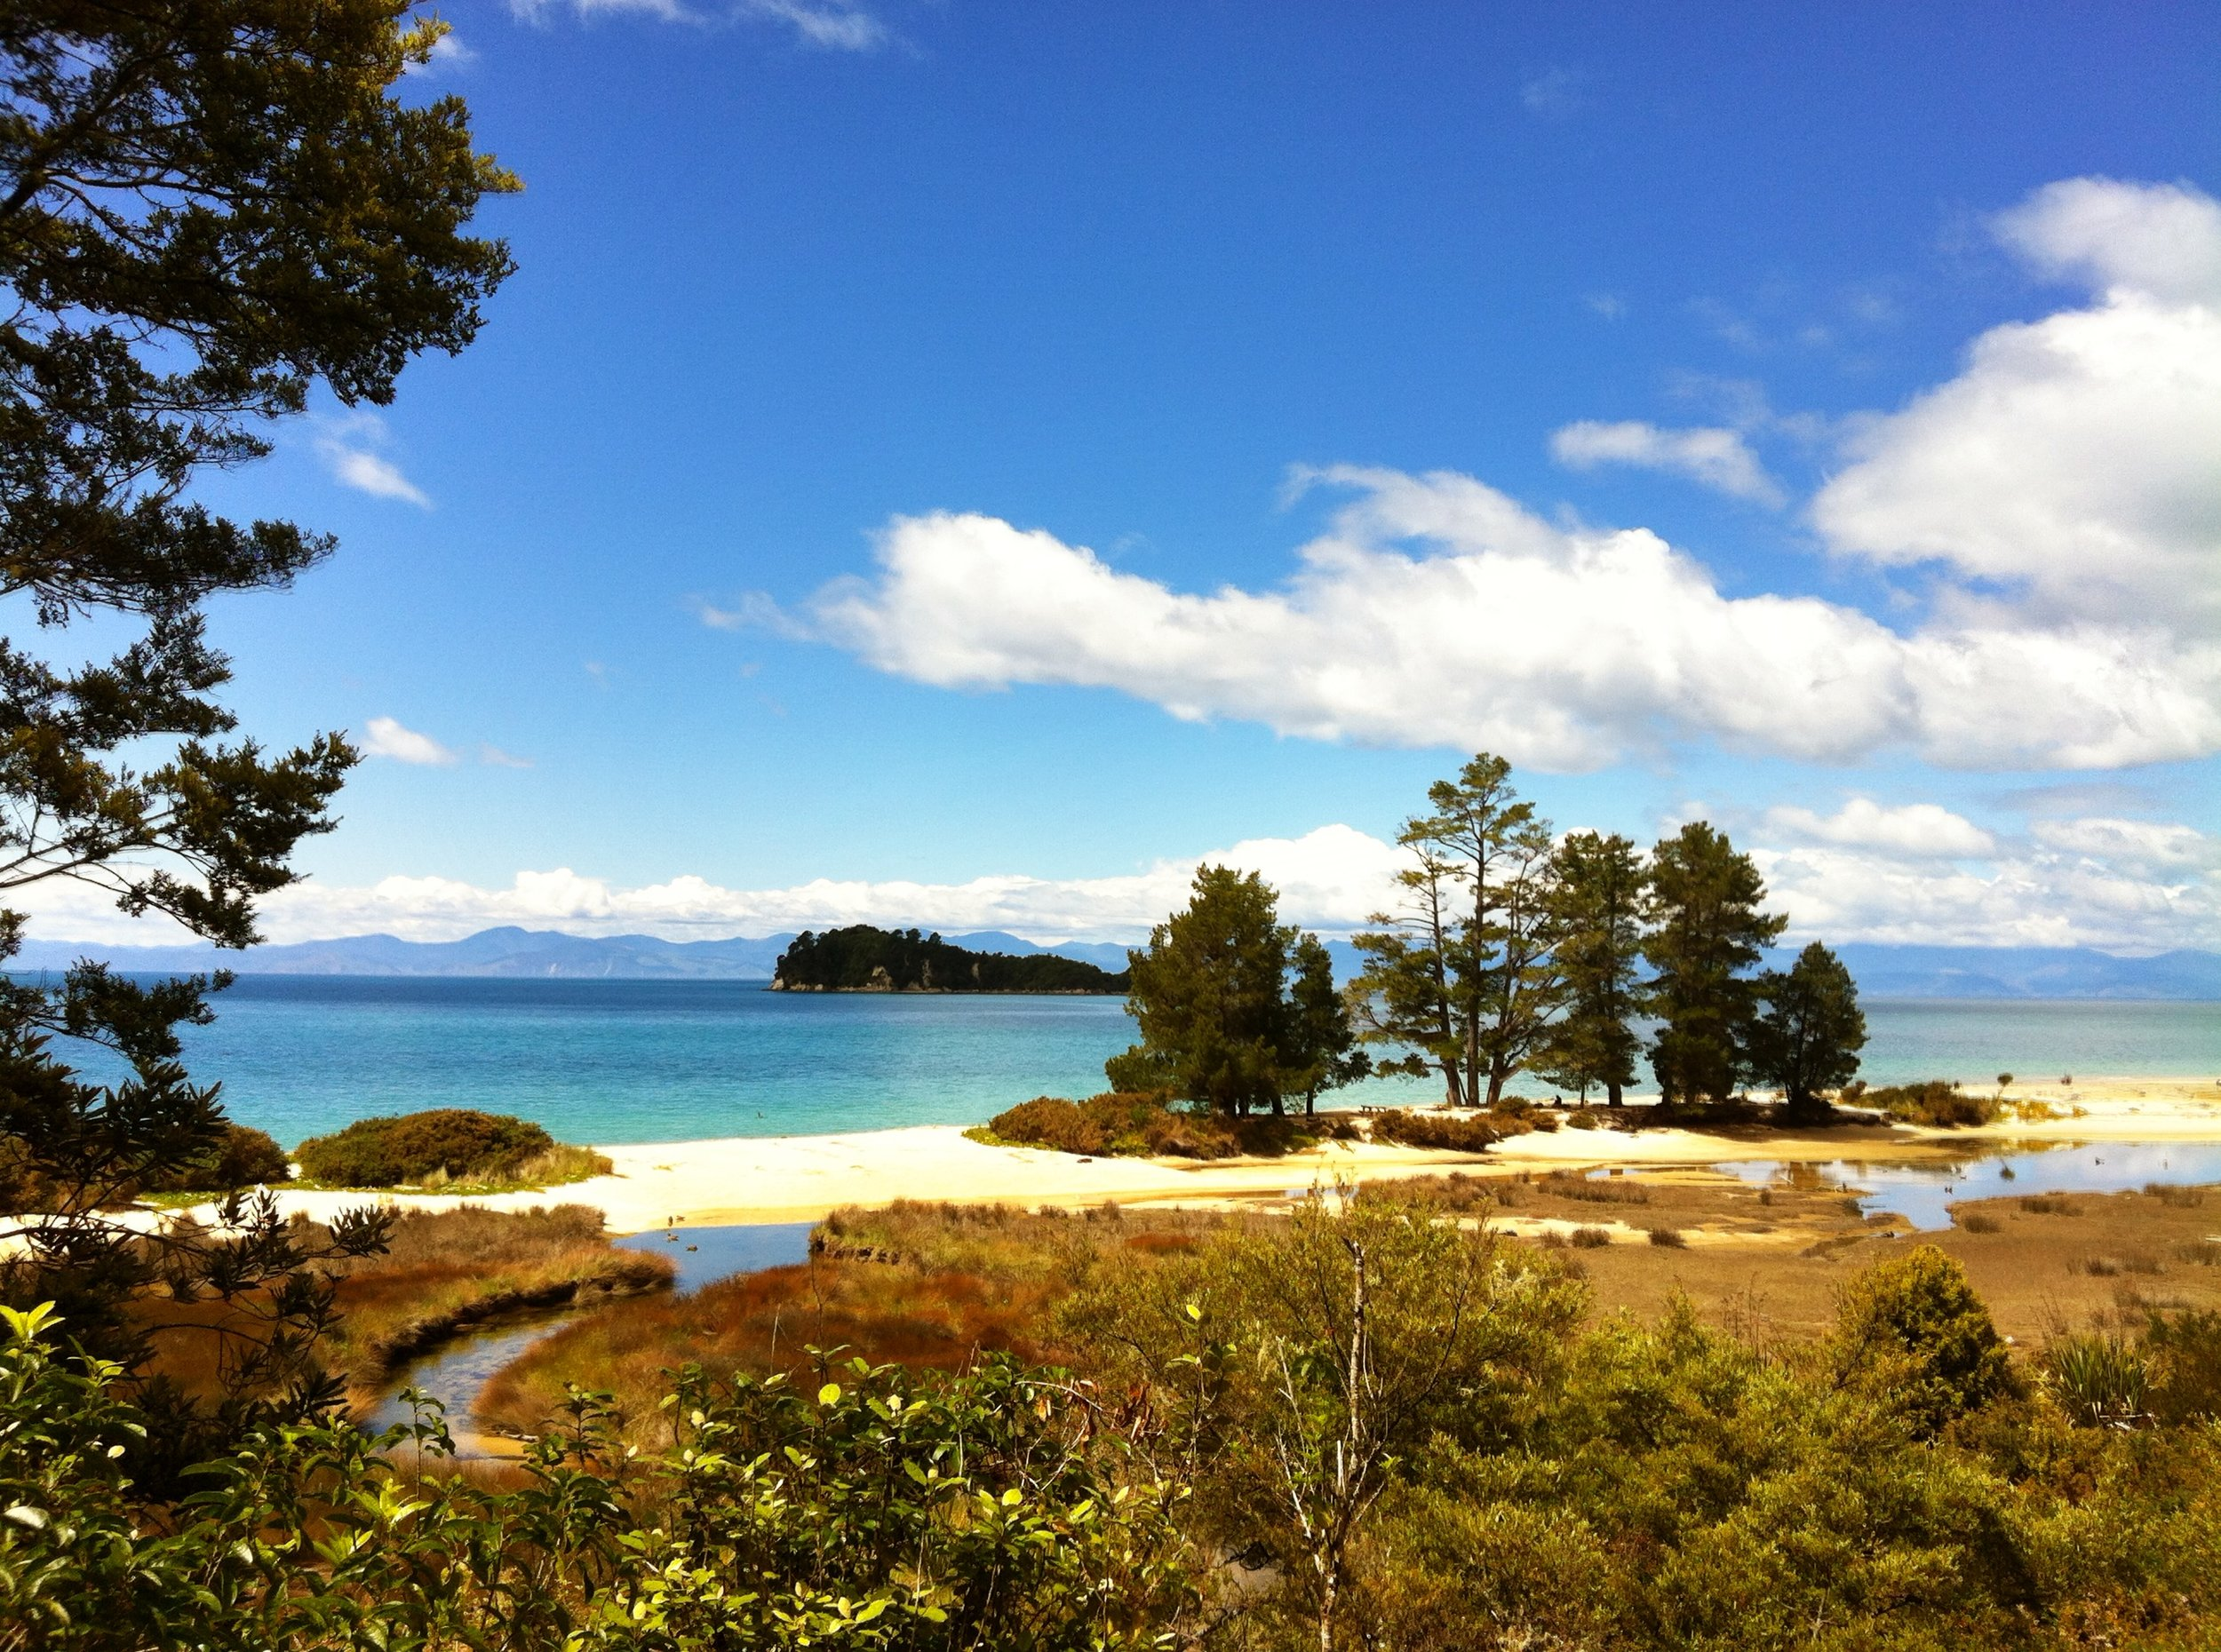 Abel_Tasman_trail,_National_Park,_South_Island,_New_Zealand_-_panoramio_(9).jpg